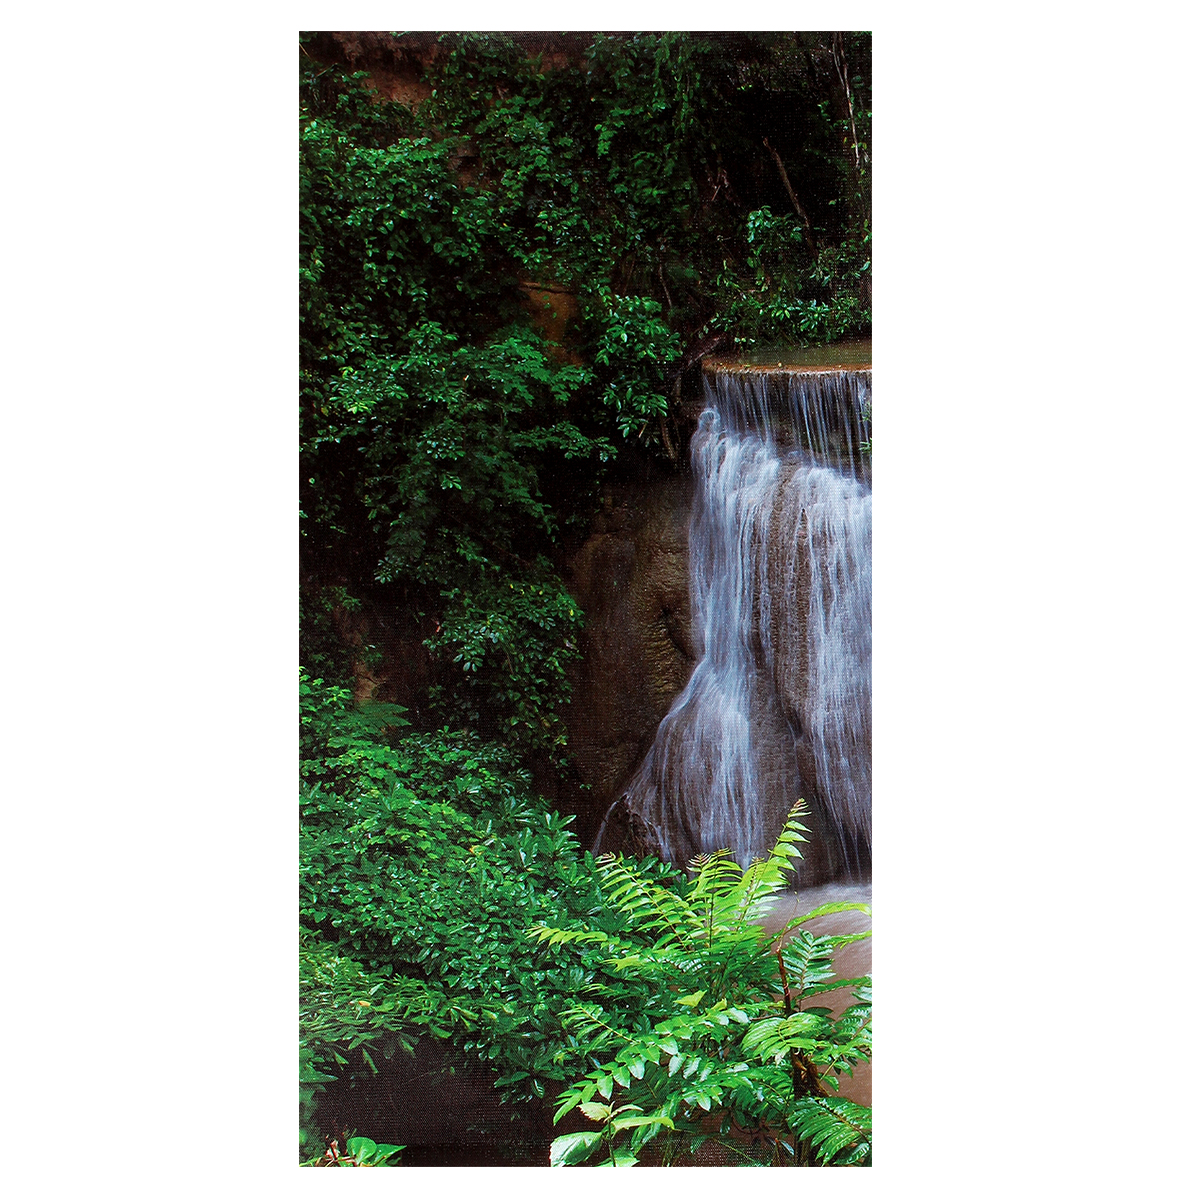 4 Cascade Waterfall Woods Scene Canvas Painting Decorative Wall Picture Home Decoration